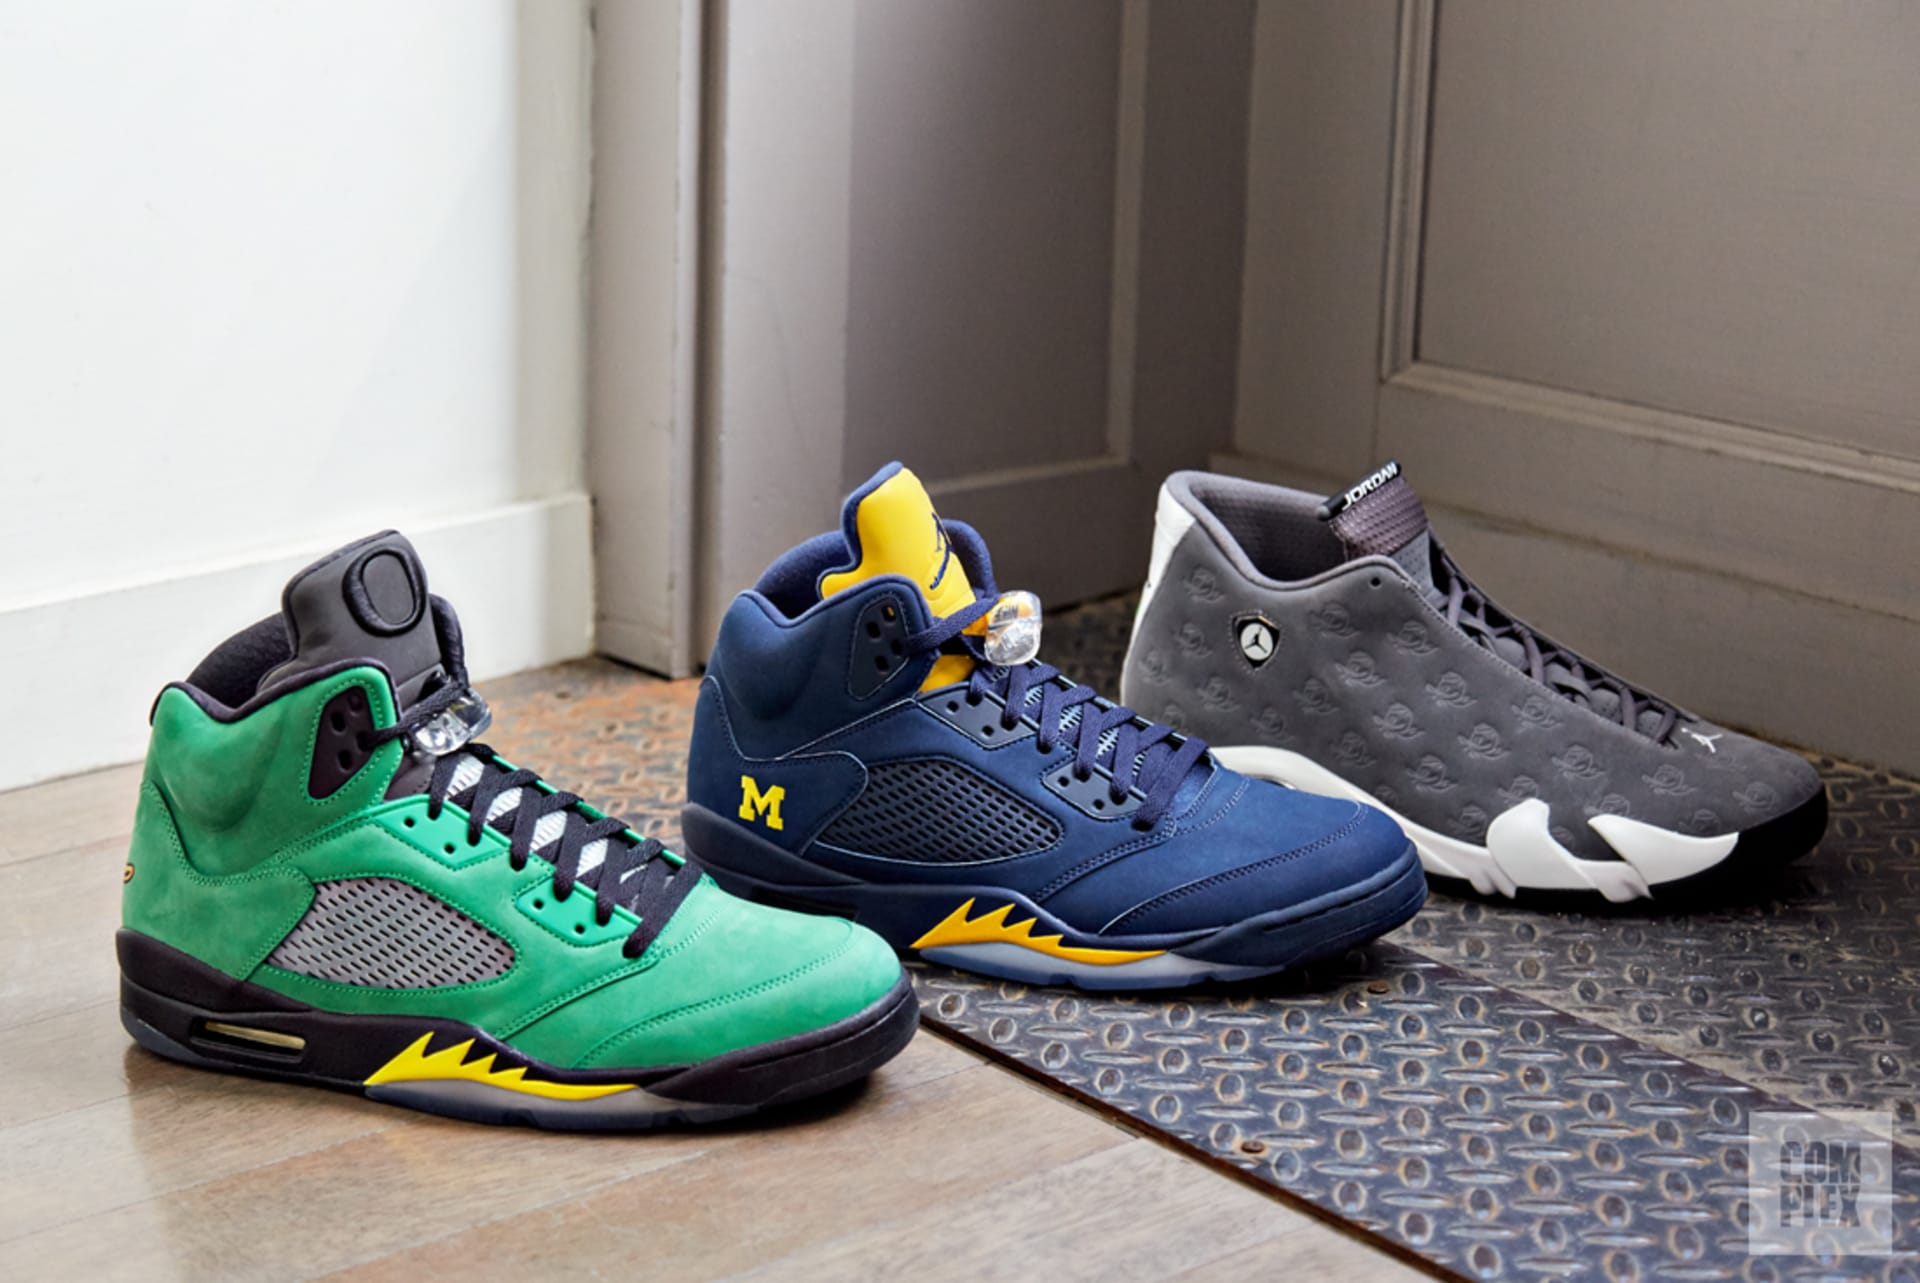 innovative design f32e2 5e8ec Air Jordan PEs made for the University of Oregon and Michigan. Sneakers  courtesy of Stadium Goods. Image via Complex Original David Cabrera